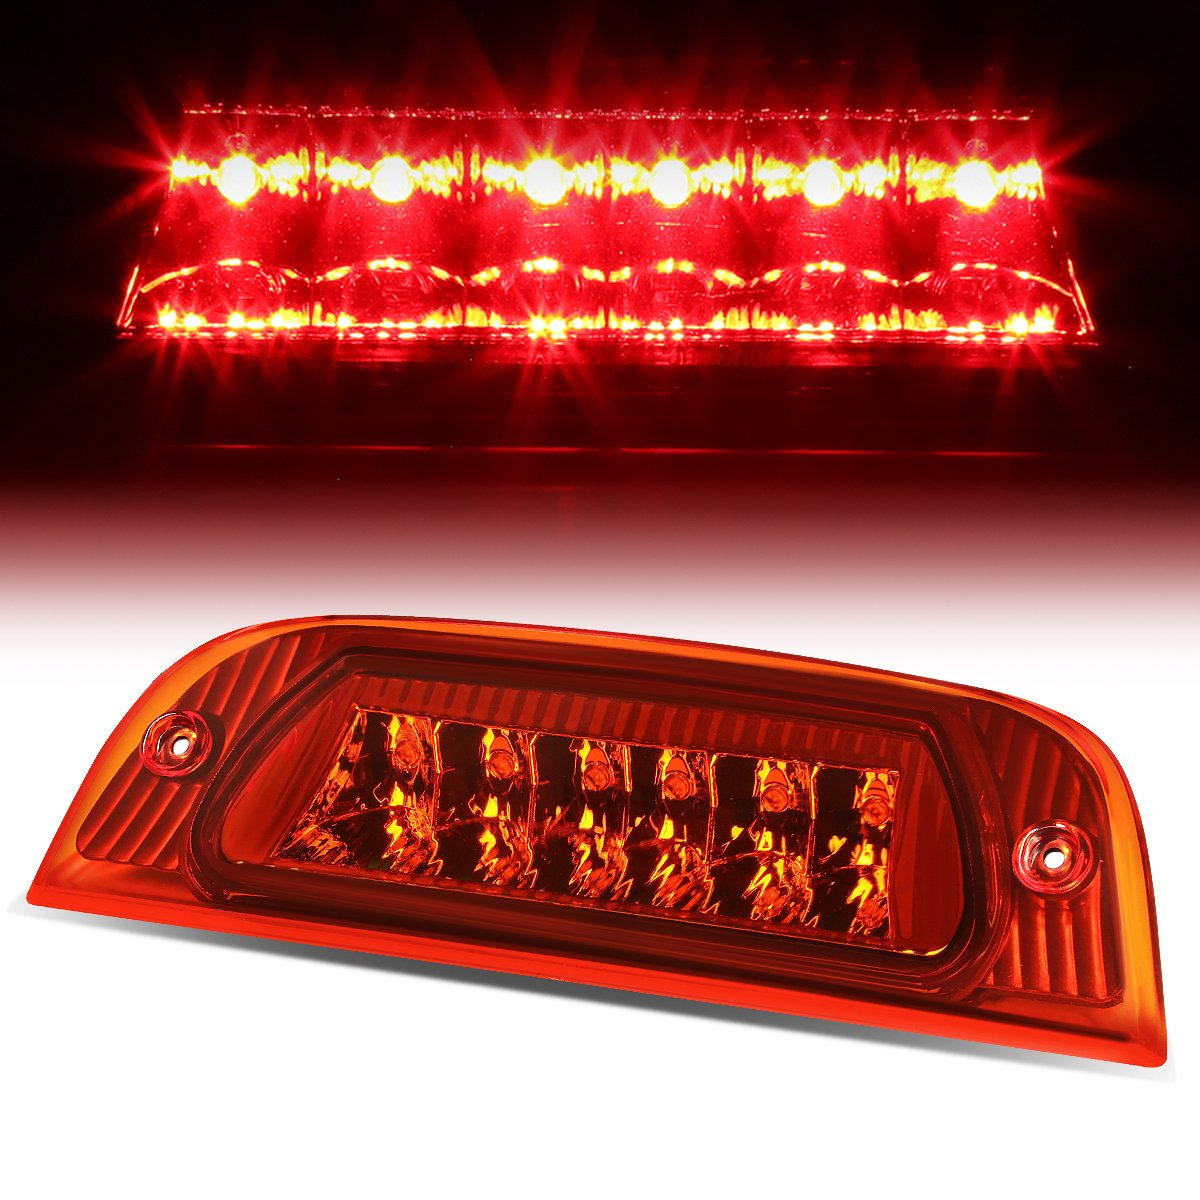 For Jeep Liberty Kj Rear High Mount Led 3rd Brake Light Stop Wiring 1985 Nissan Pickup Red Lens Automotive